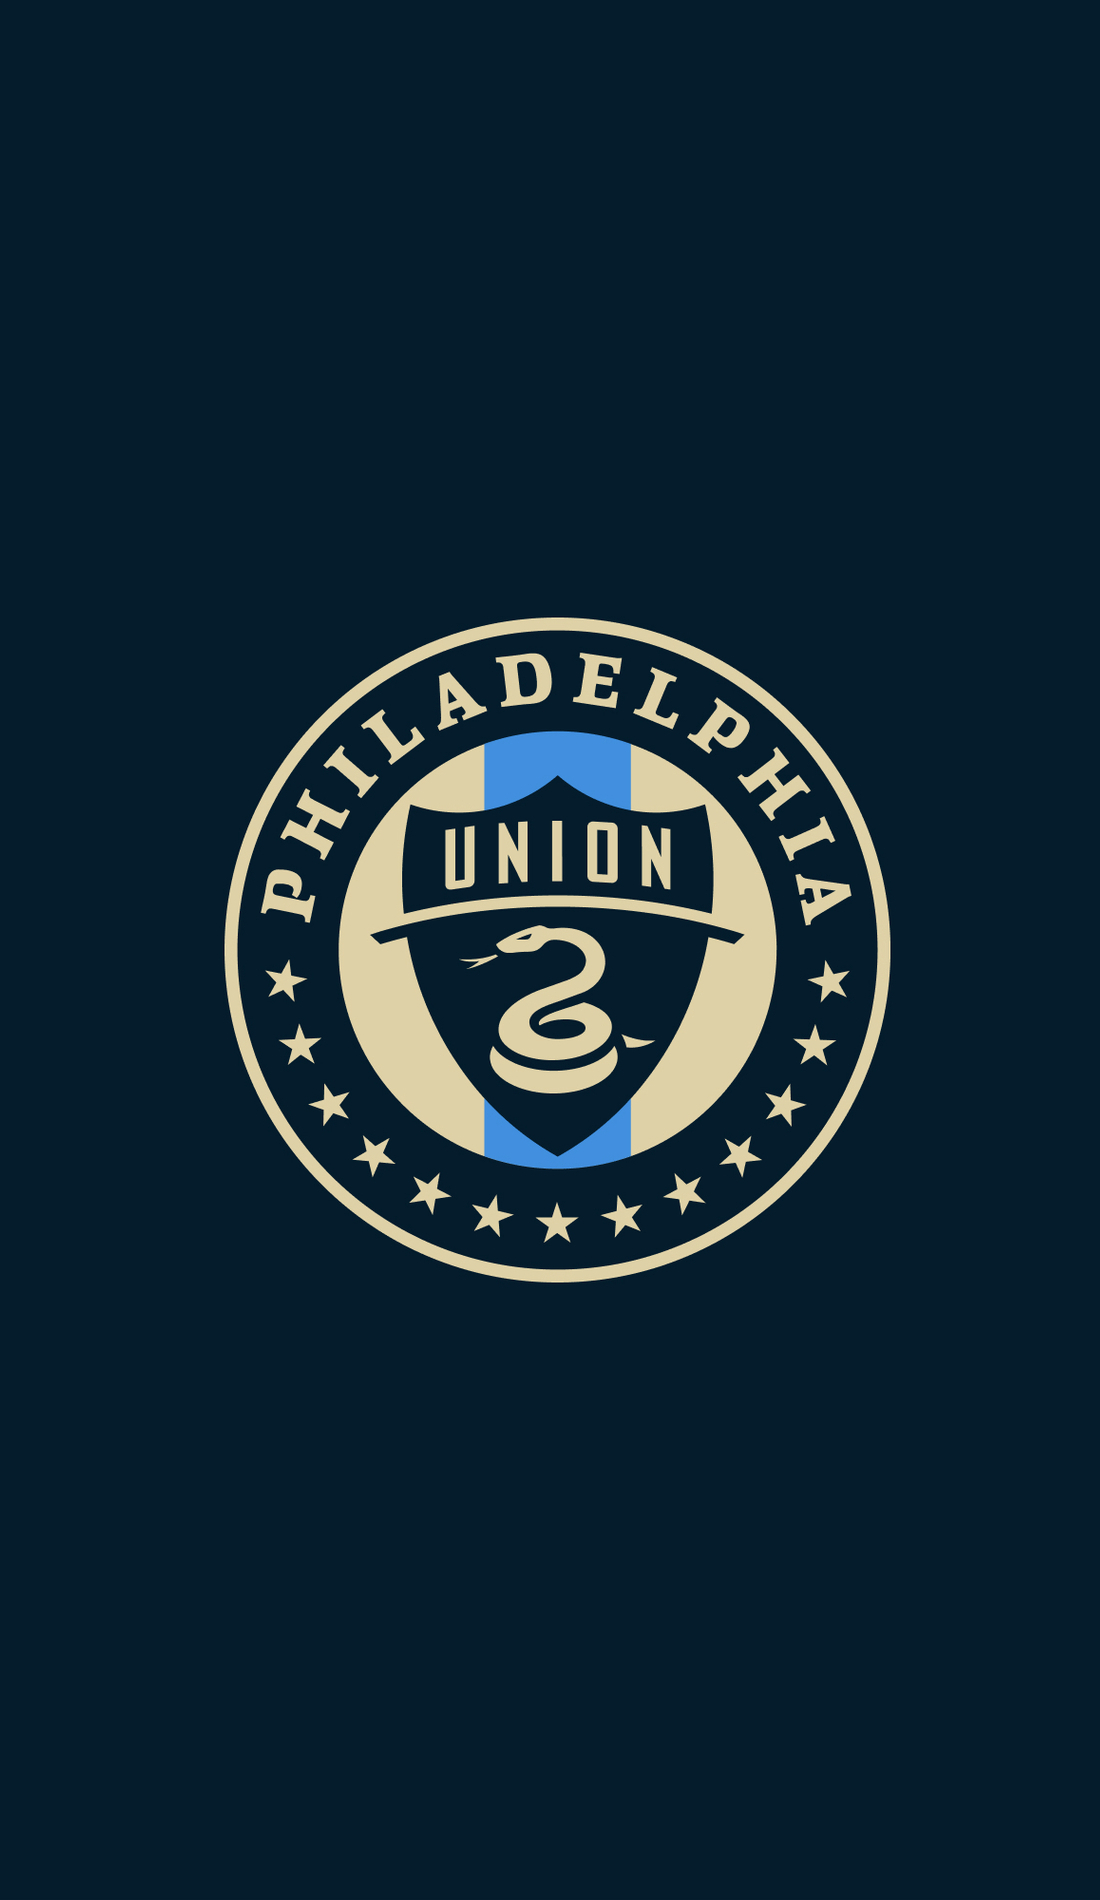 A Philadelphia Union live event